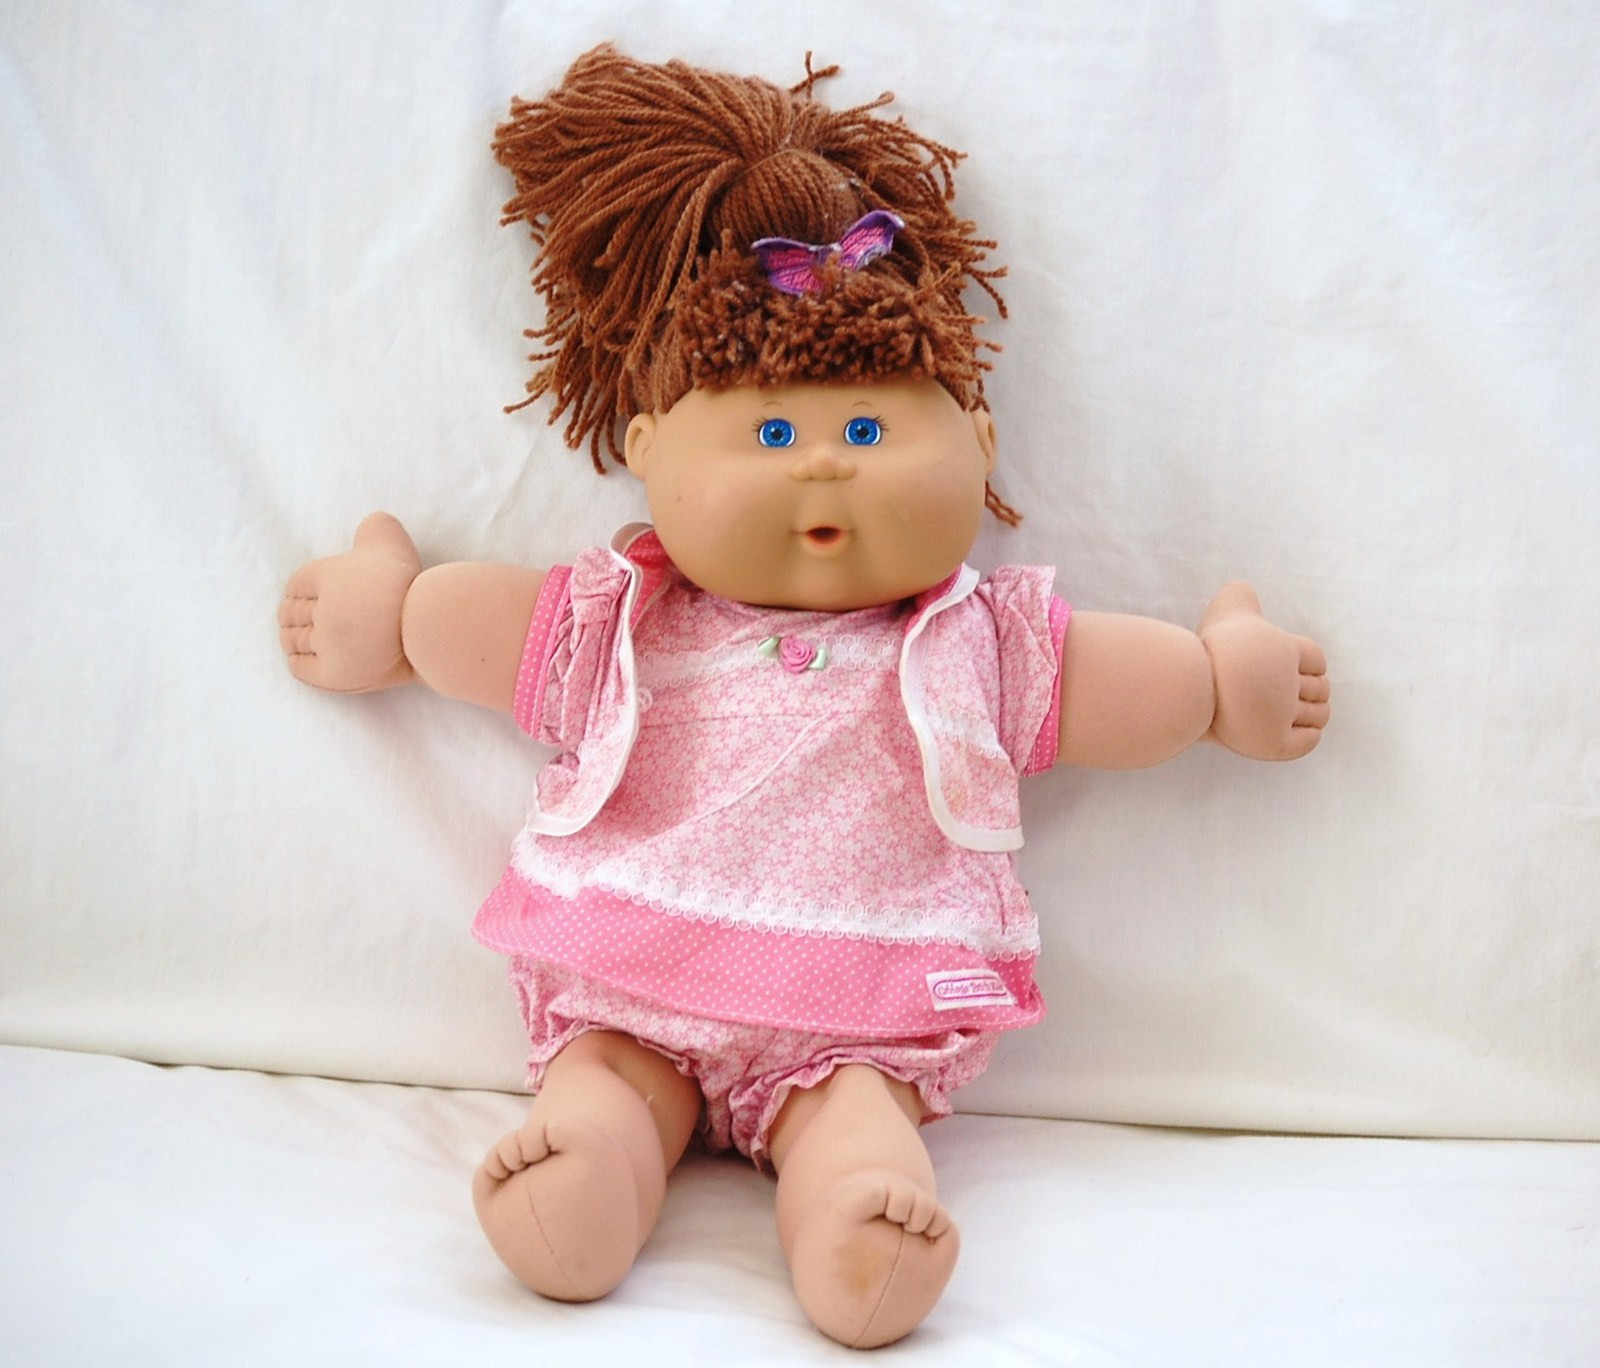 Original Cabbage Patch Dolls Luxury Cabbage Patch Kid Vintage Doll 2004 original Applachian Of Incredible 43 Ideas original Cabbage Patch Dolls